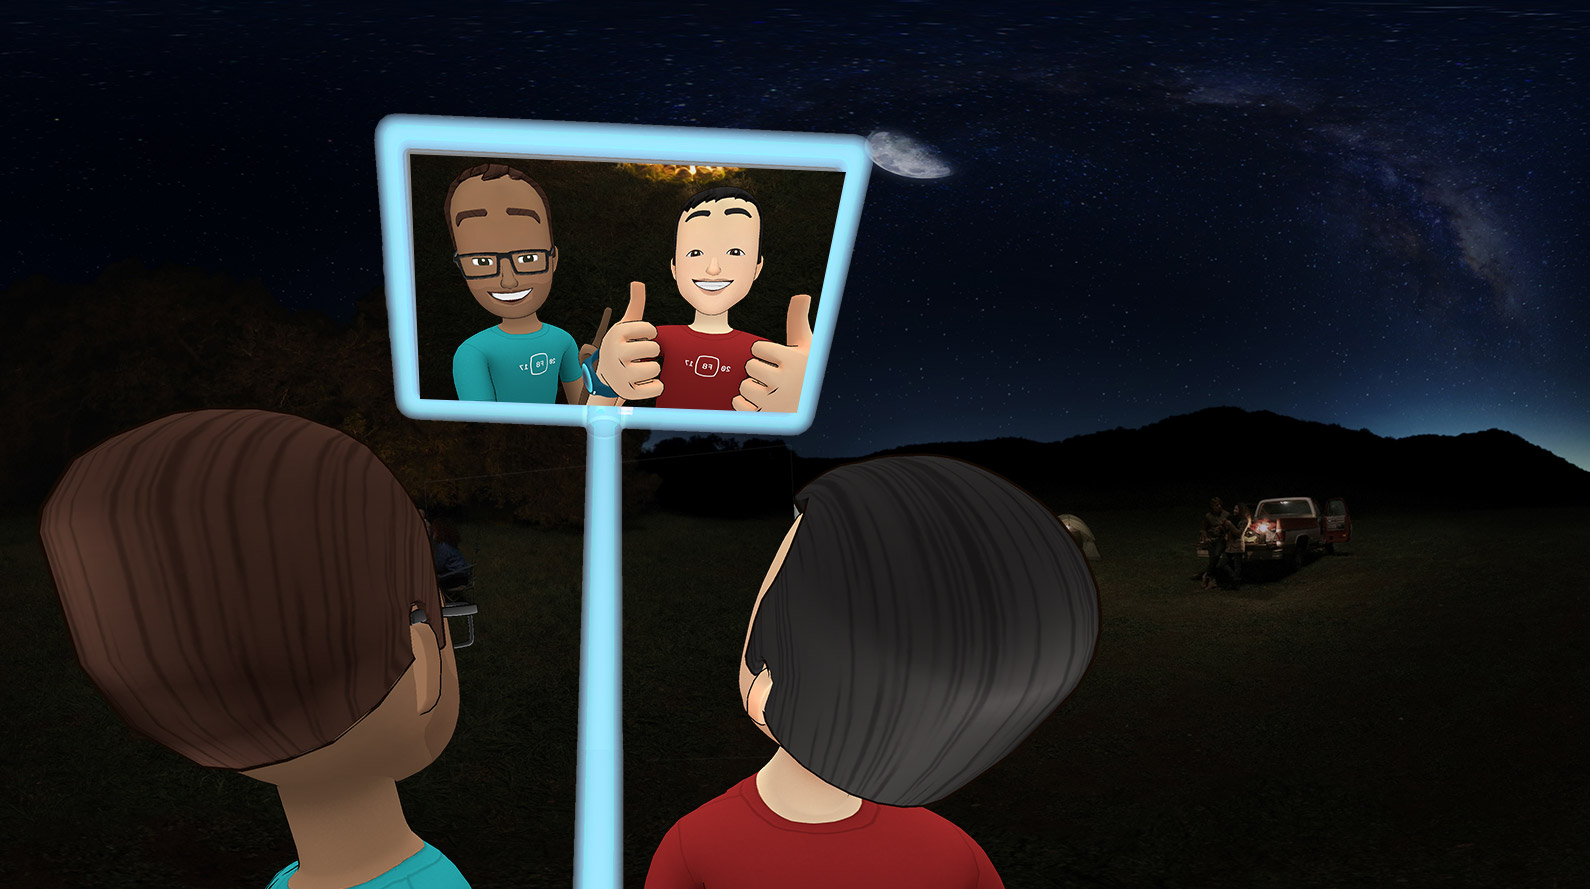 Facebook Spaces Lets You Mingle With Friends In Virtual Reality Using Oculus Rift